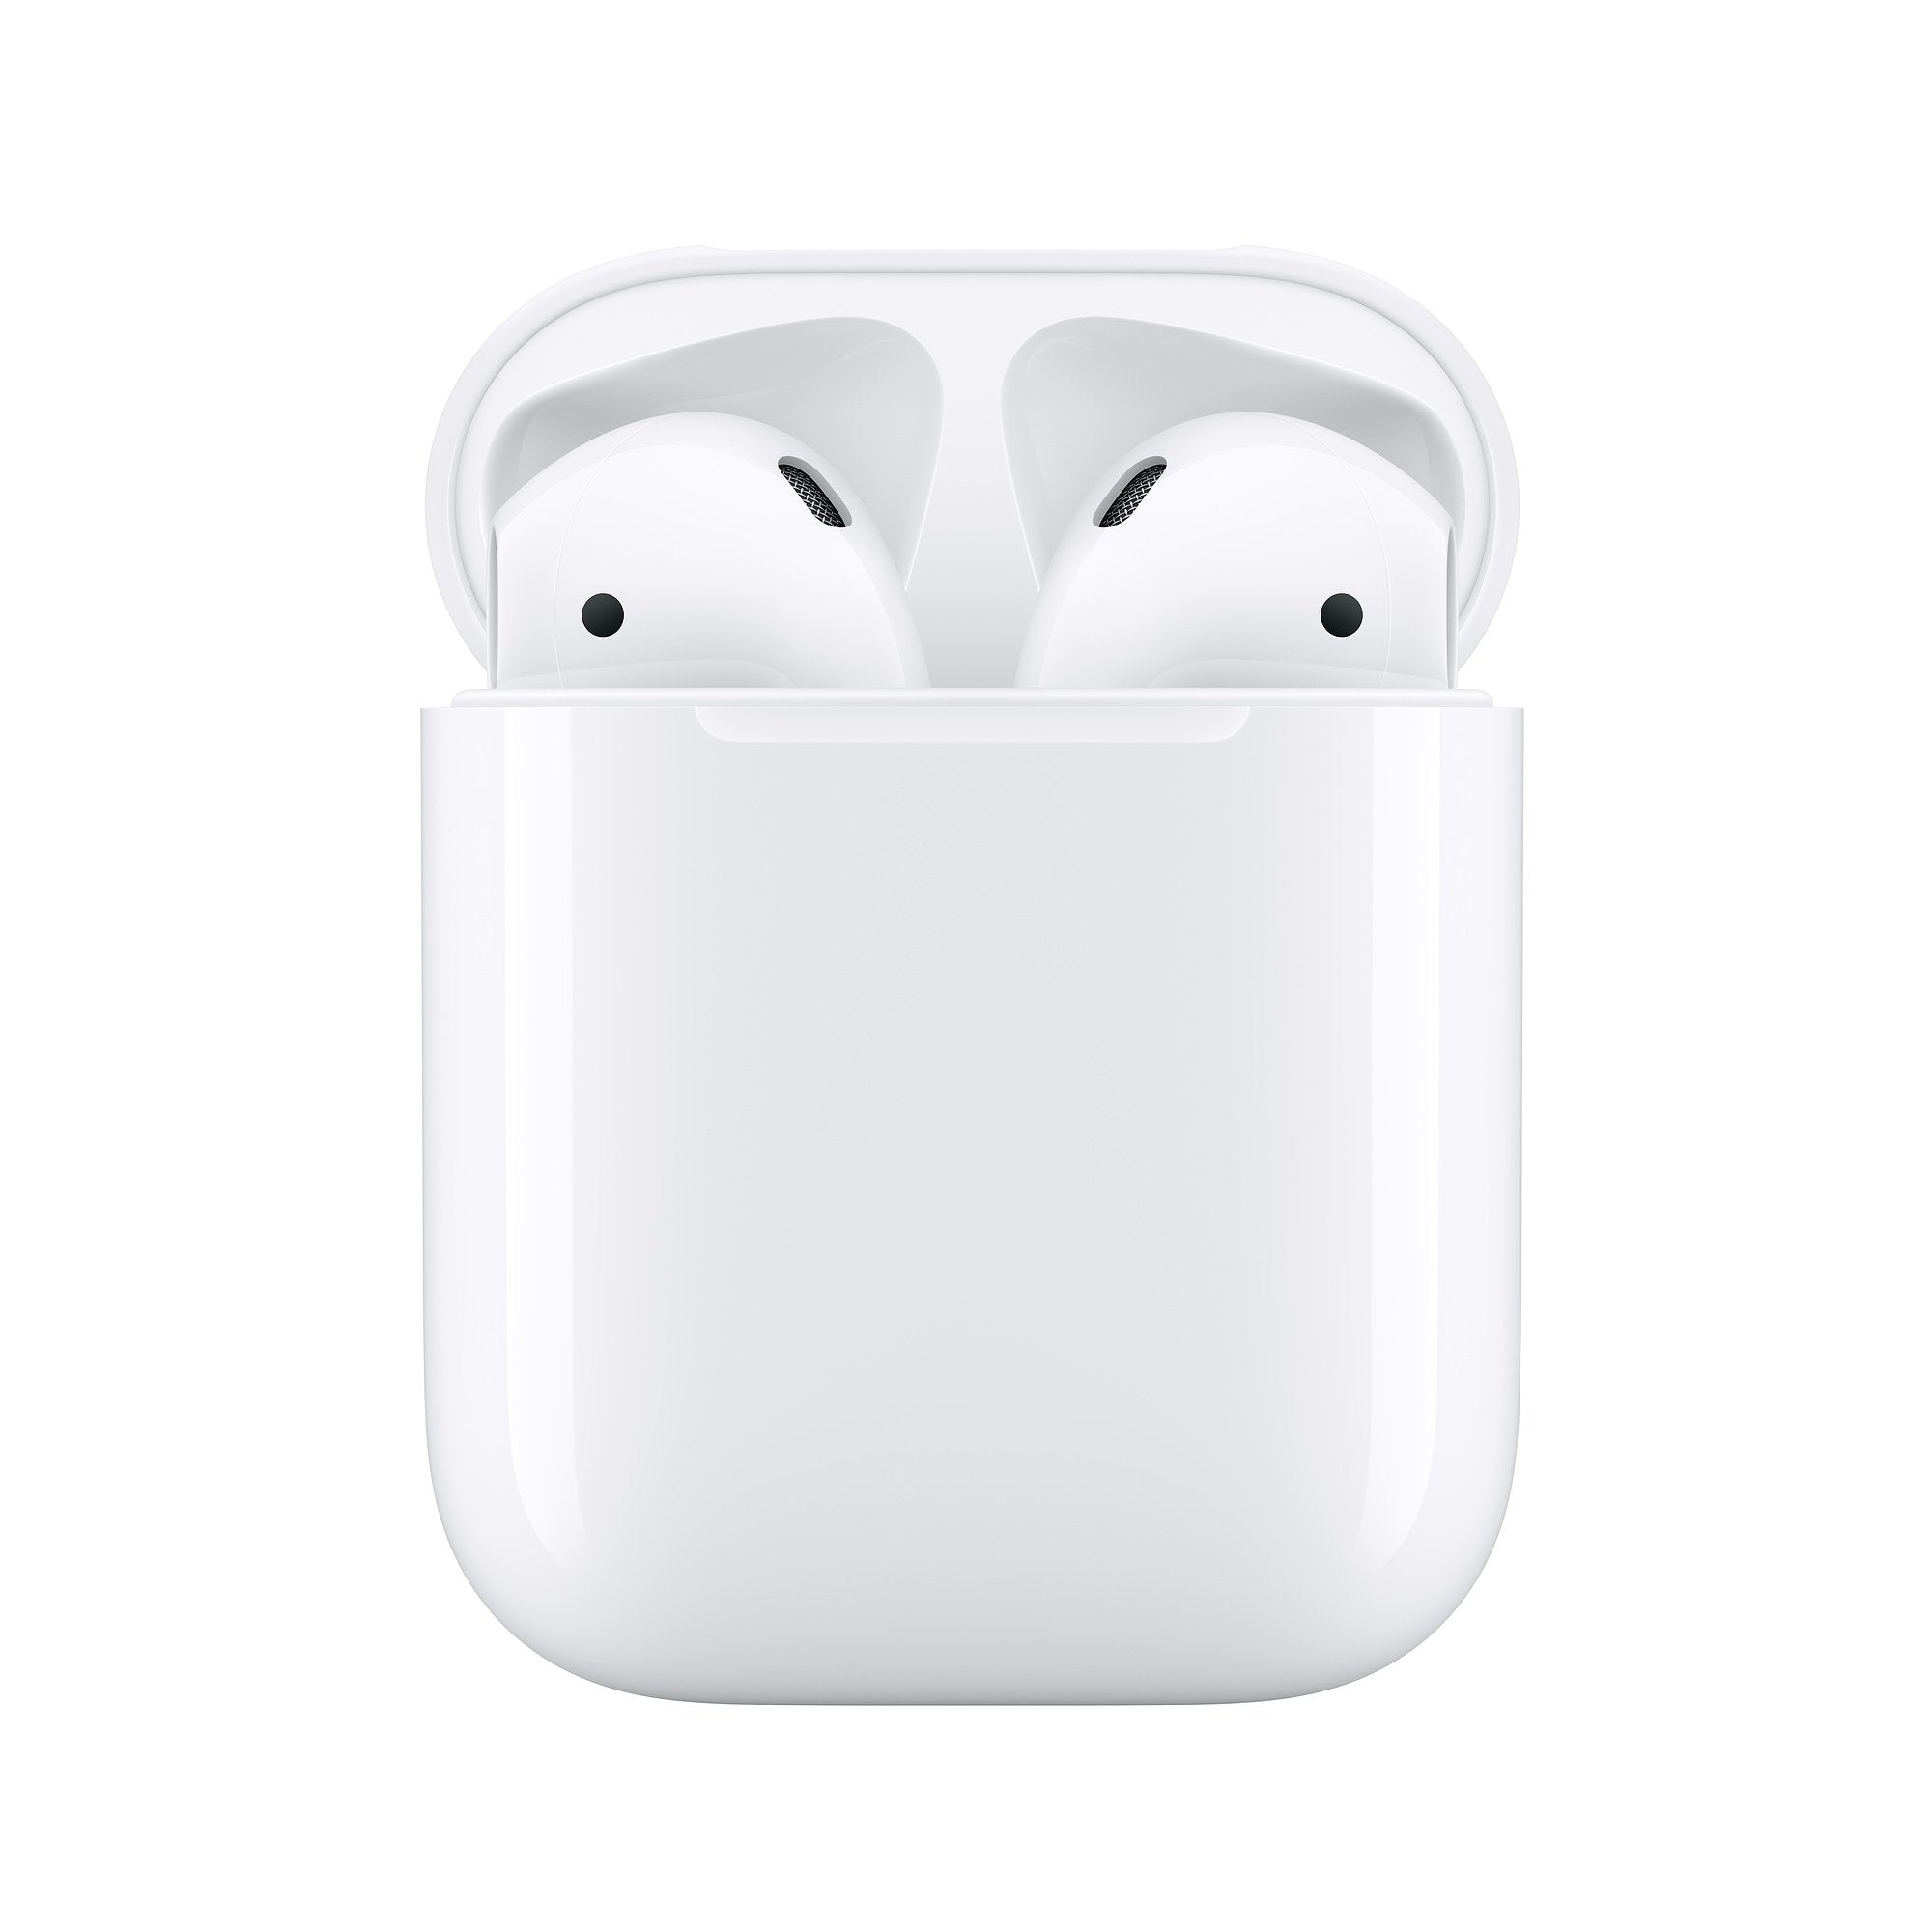 First Generation AirPods